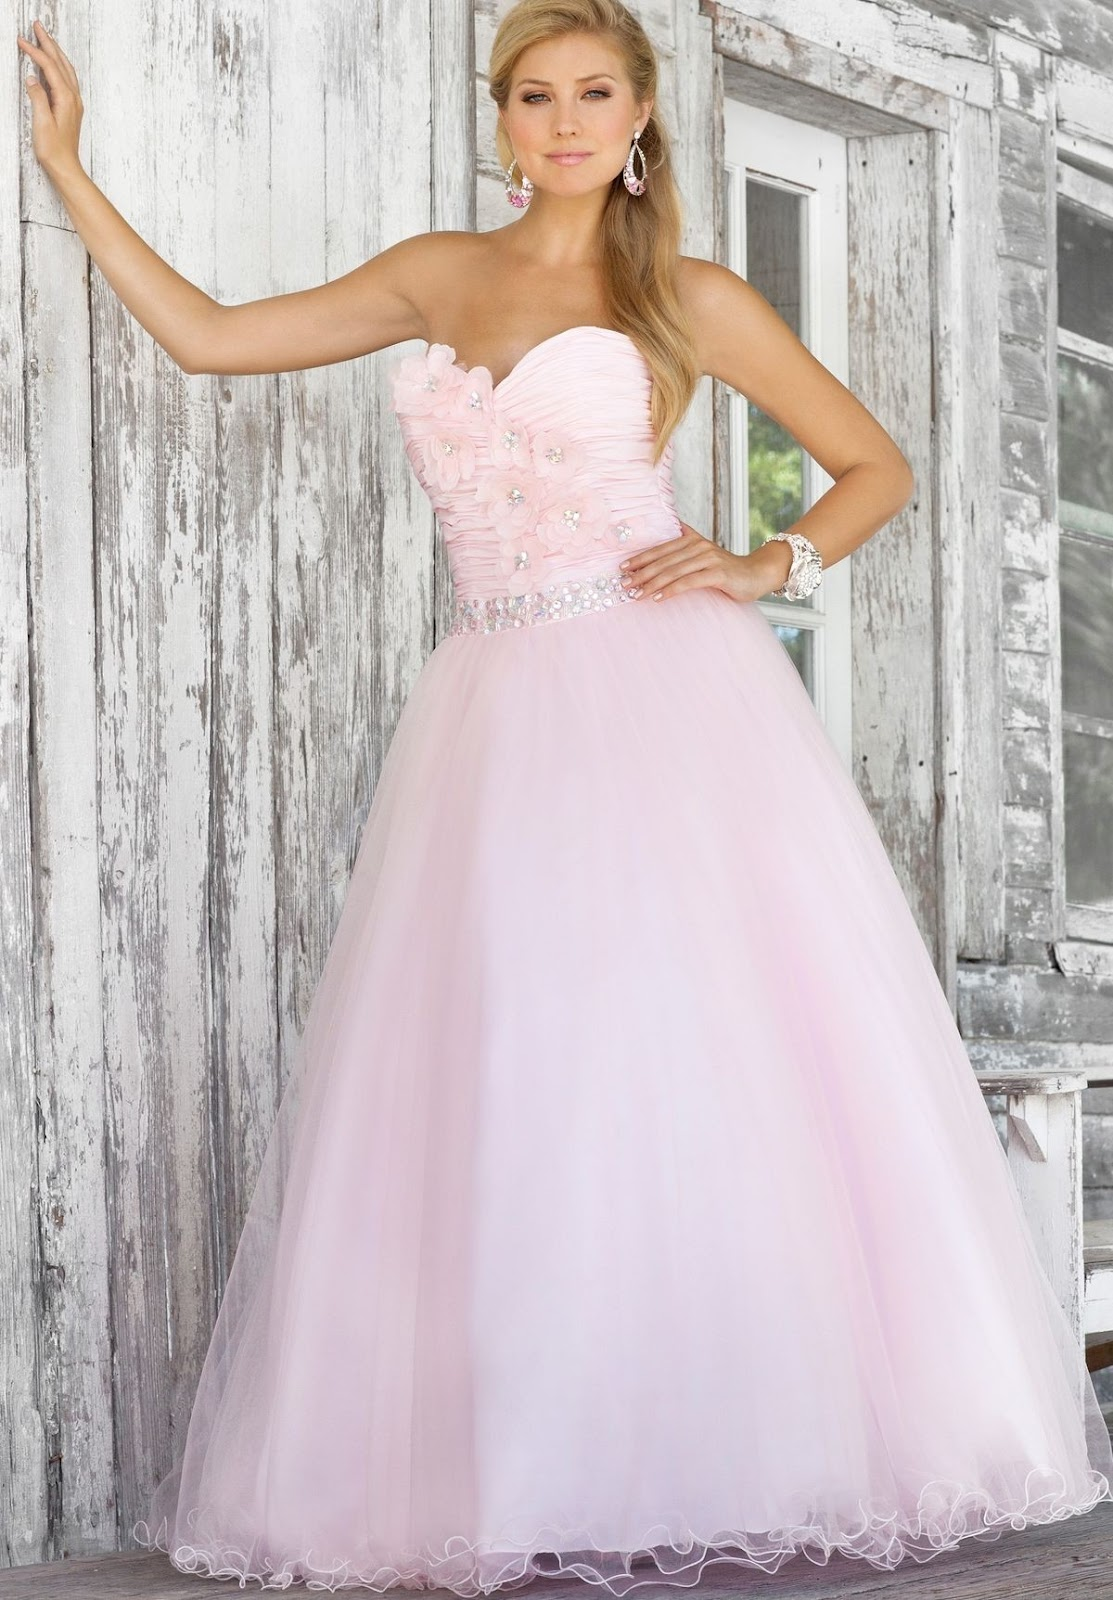 WhiteAzalea Ball Gowns: Fall in Love with Delicate Ball Gowns